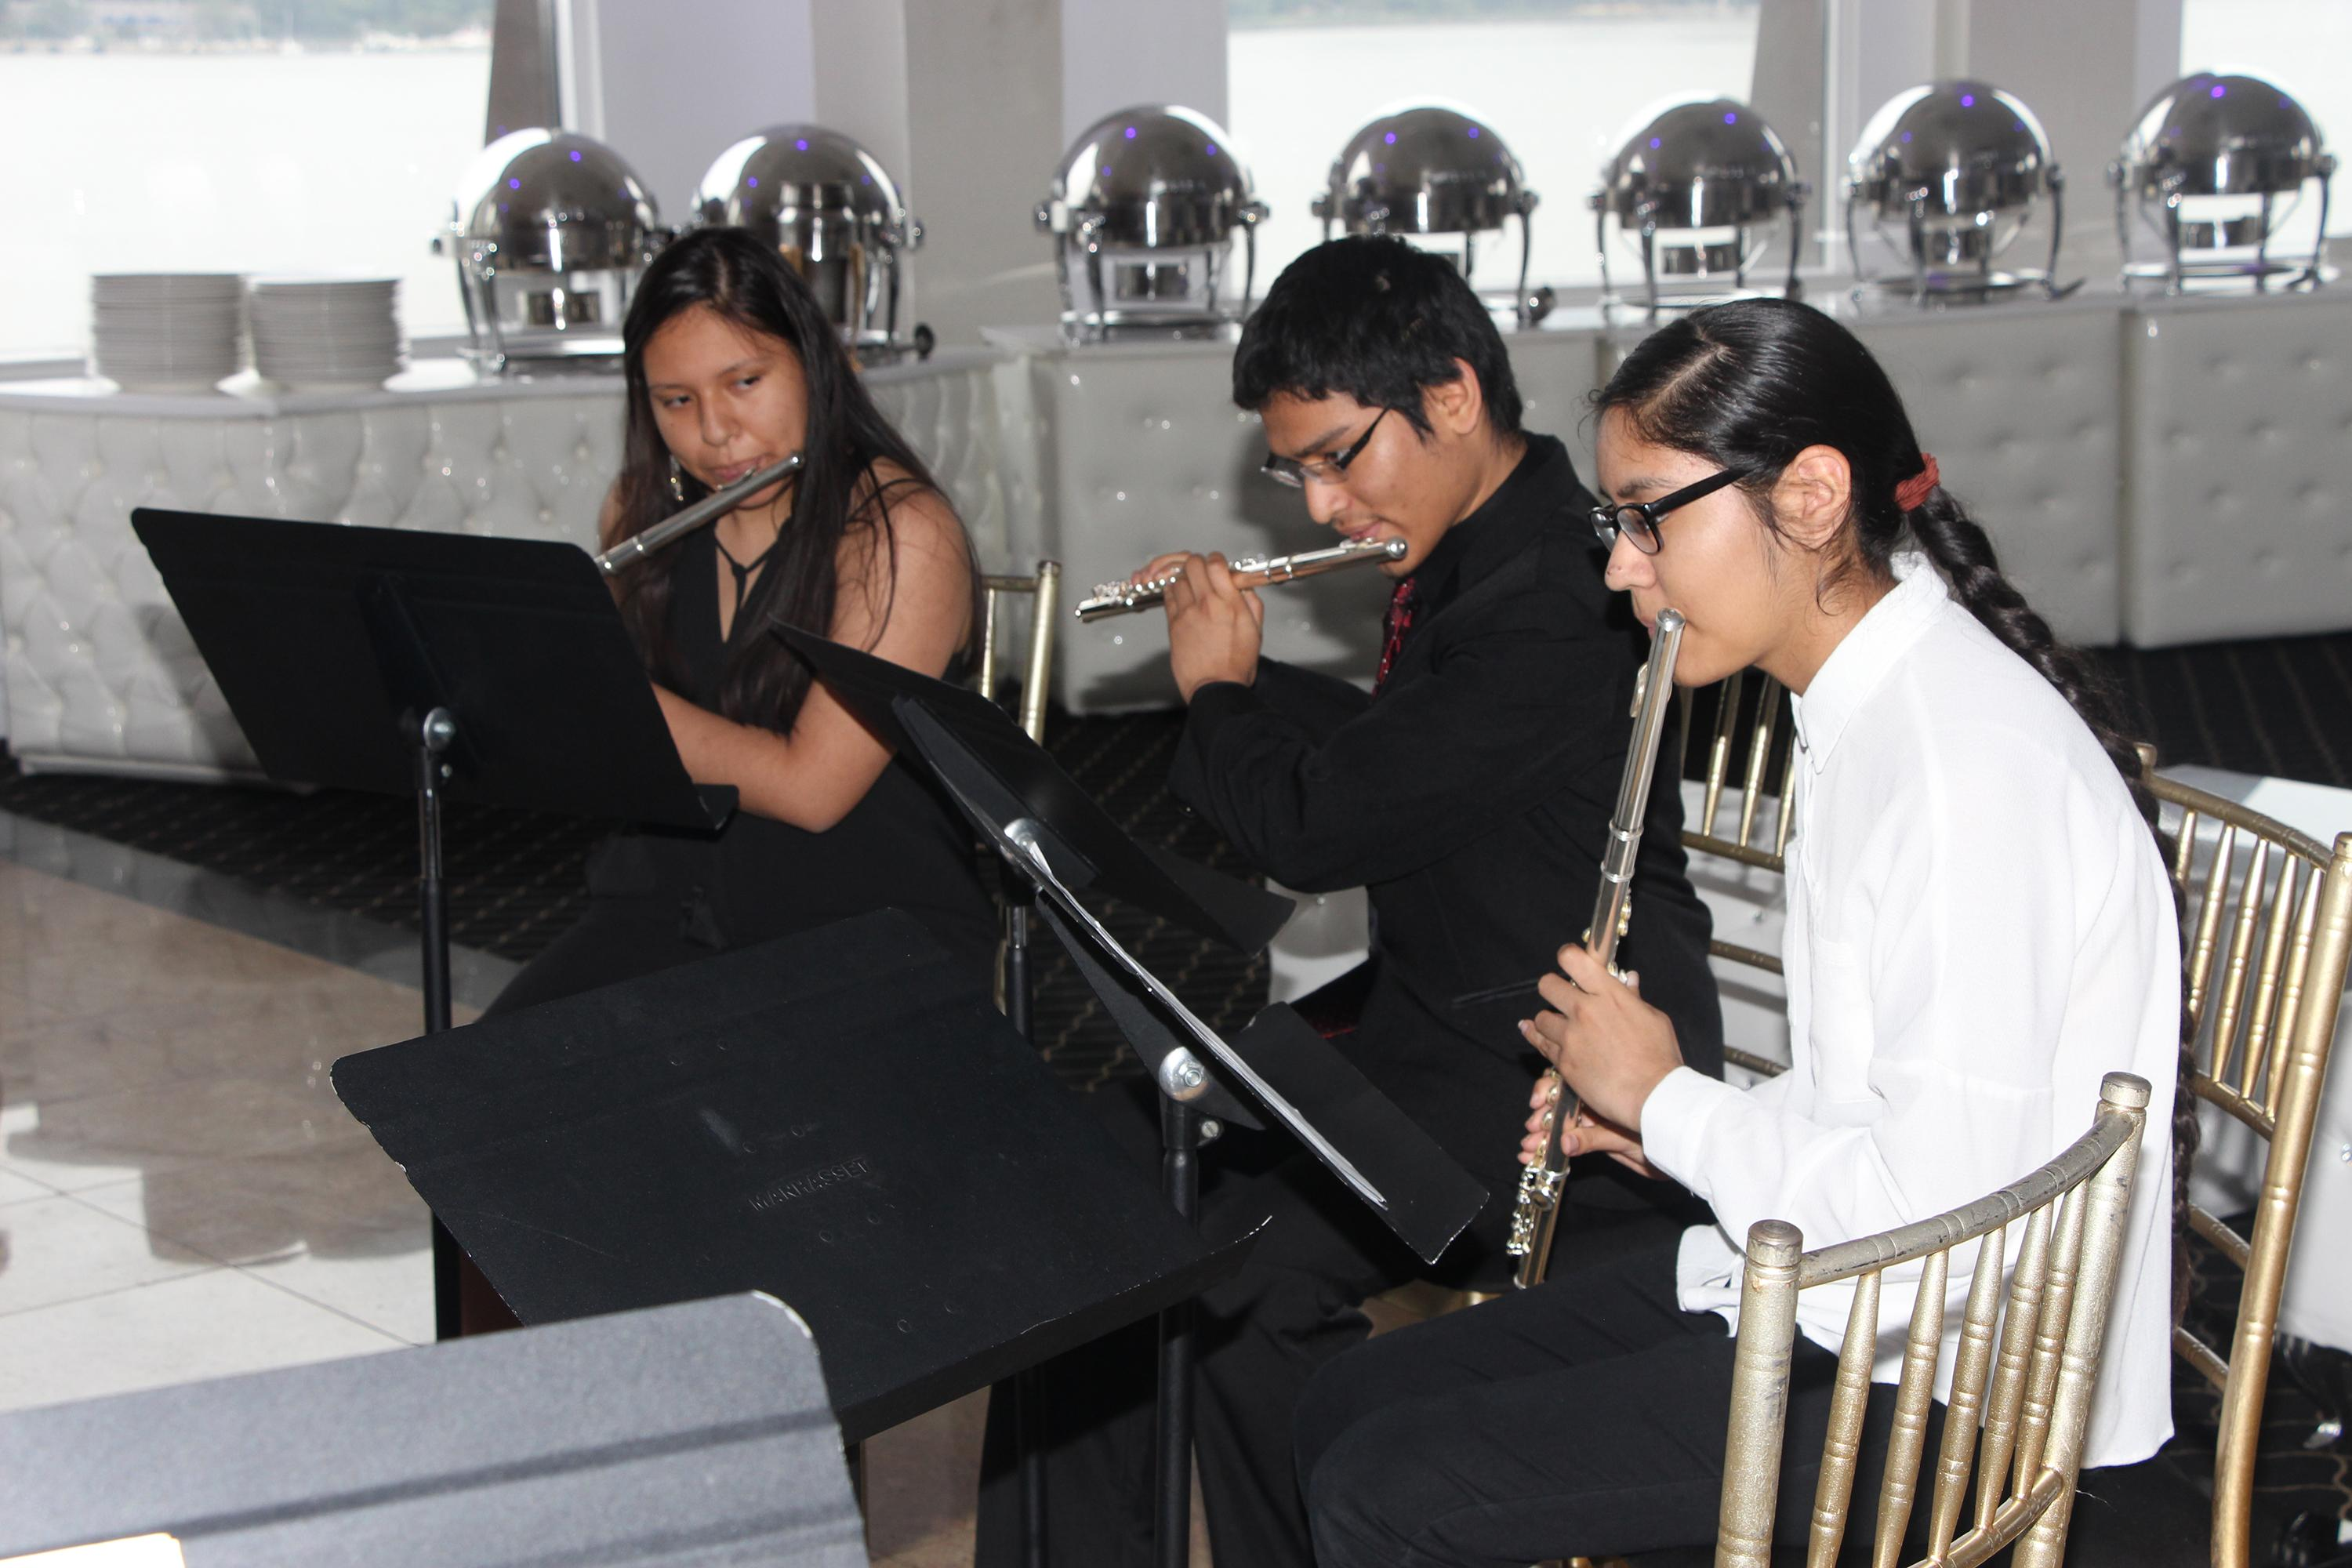 UC students playing the flute